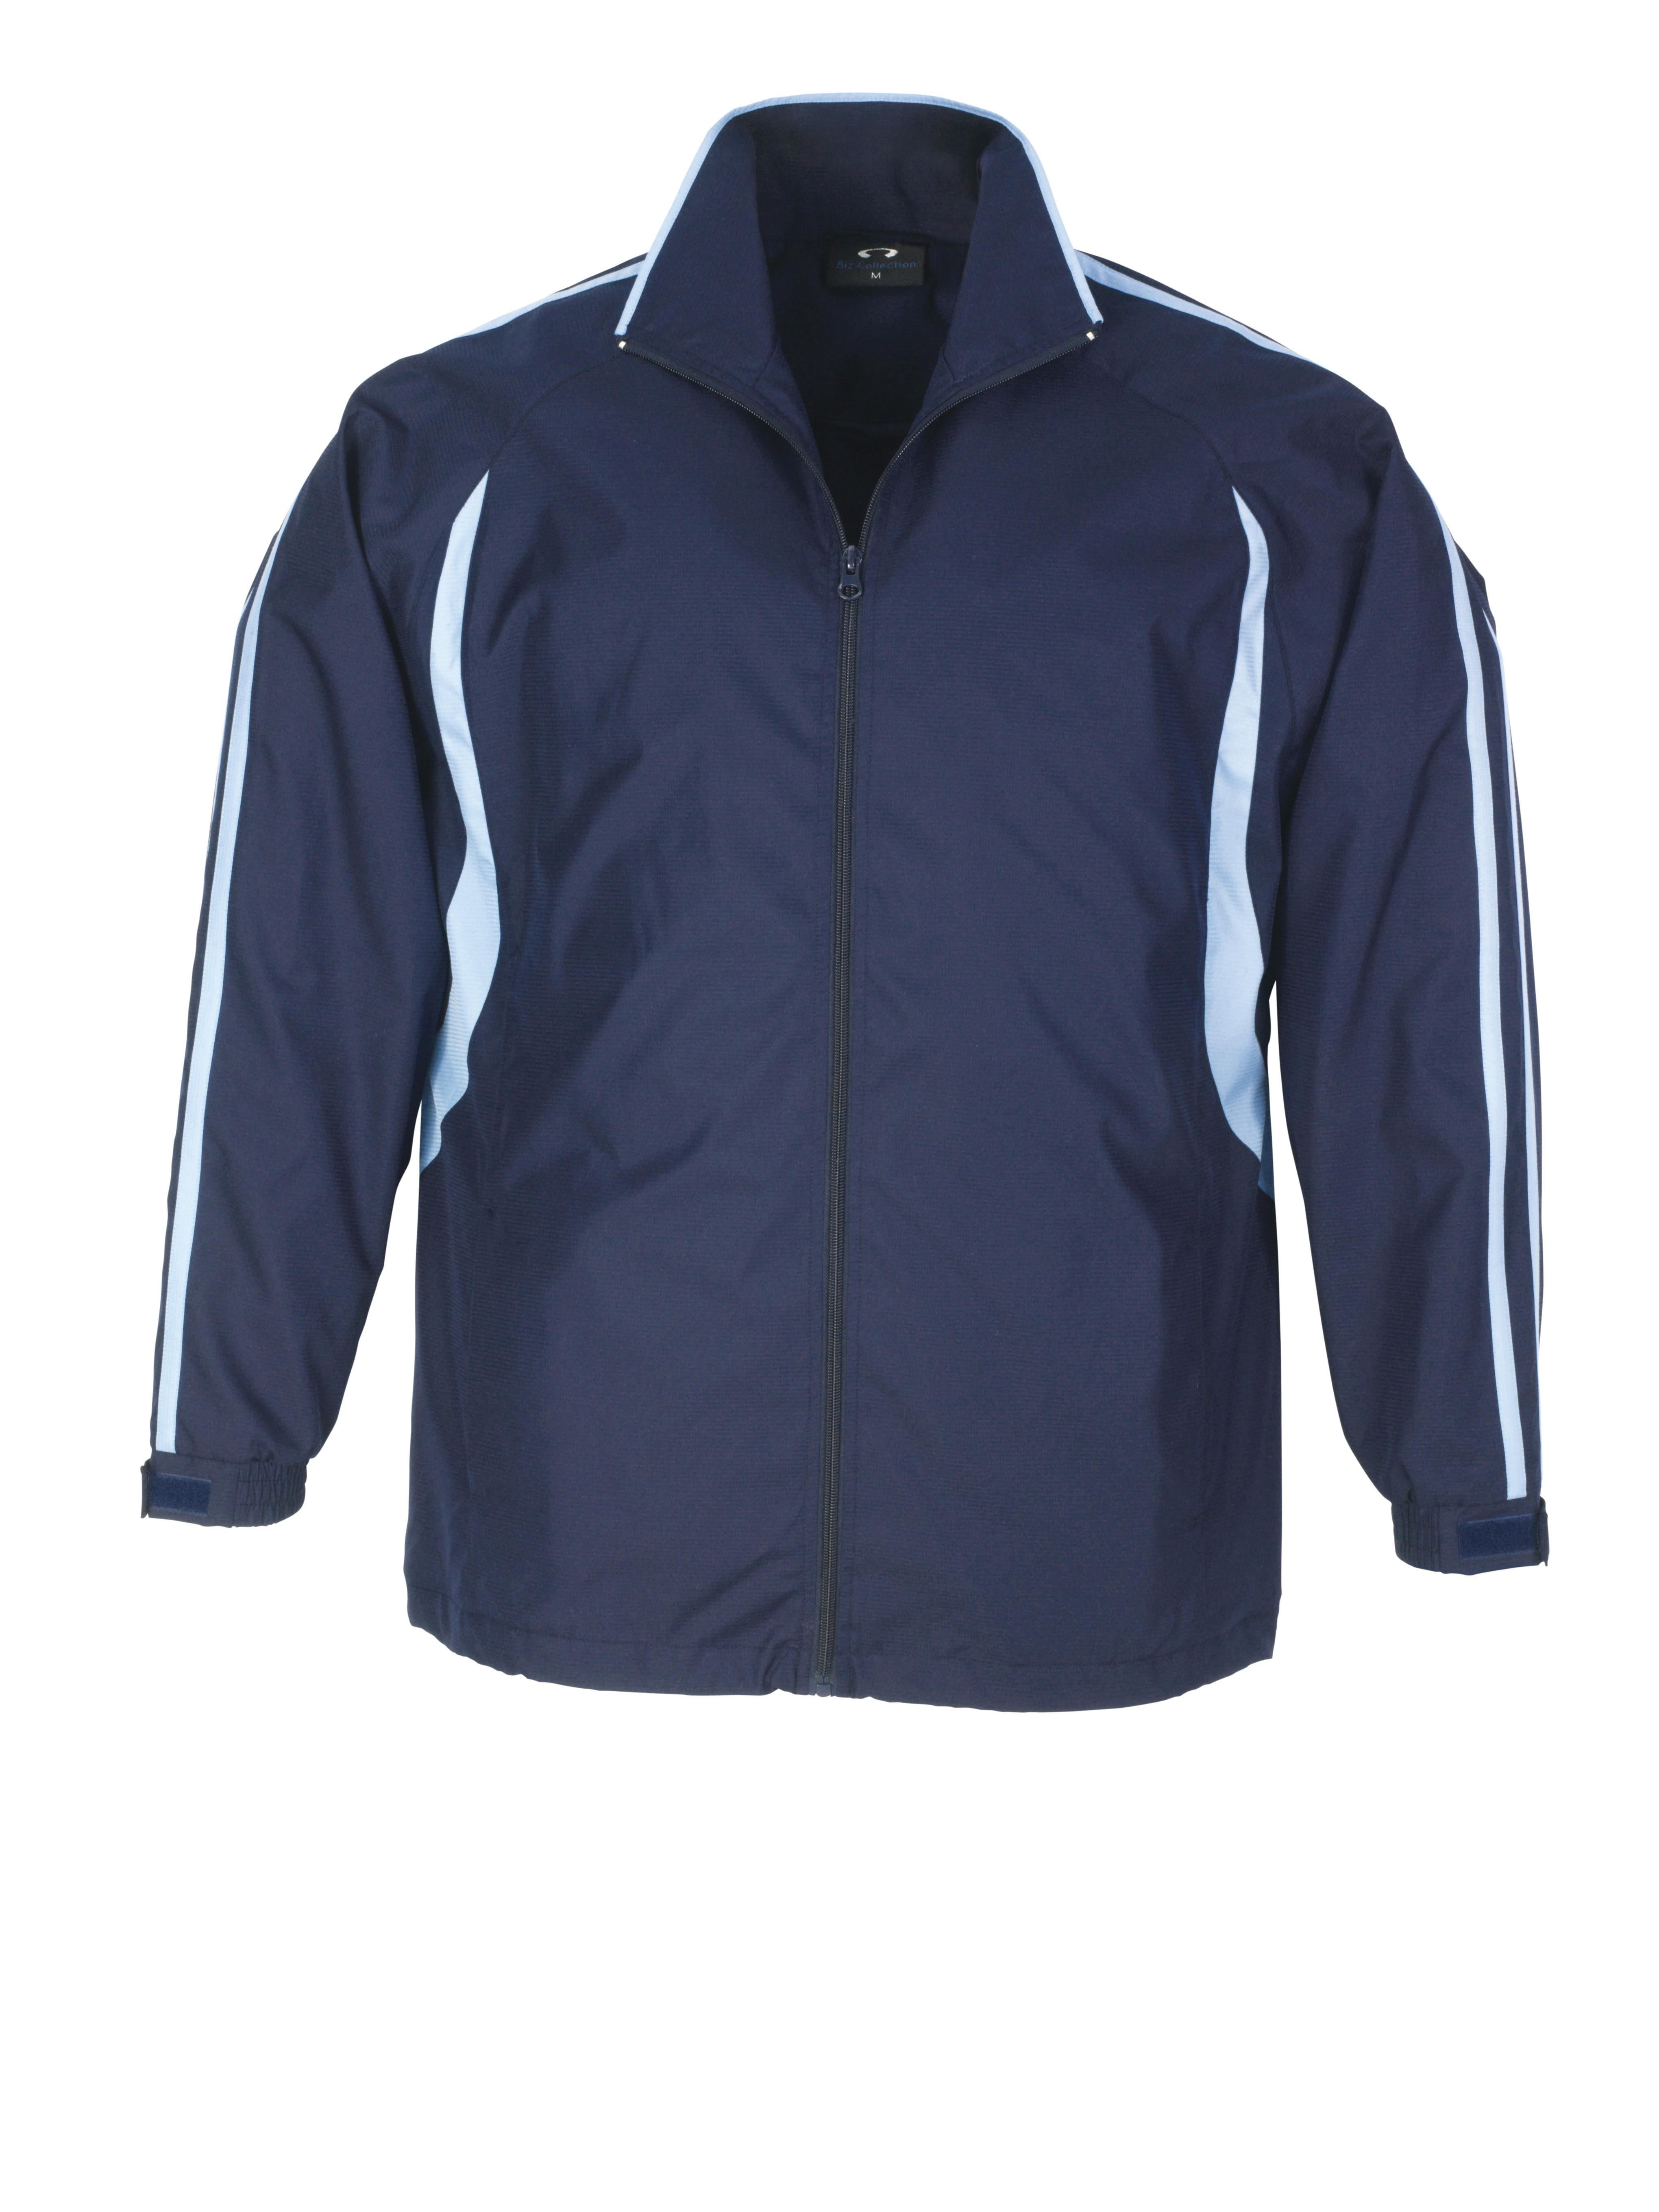 Flash Unisex Track Top - Nlb Only